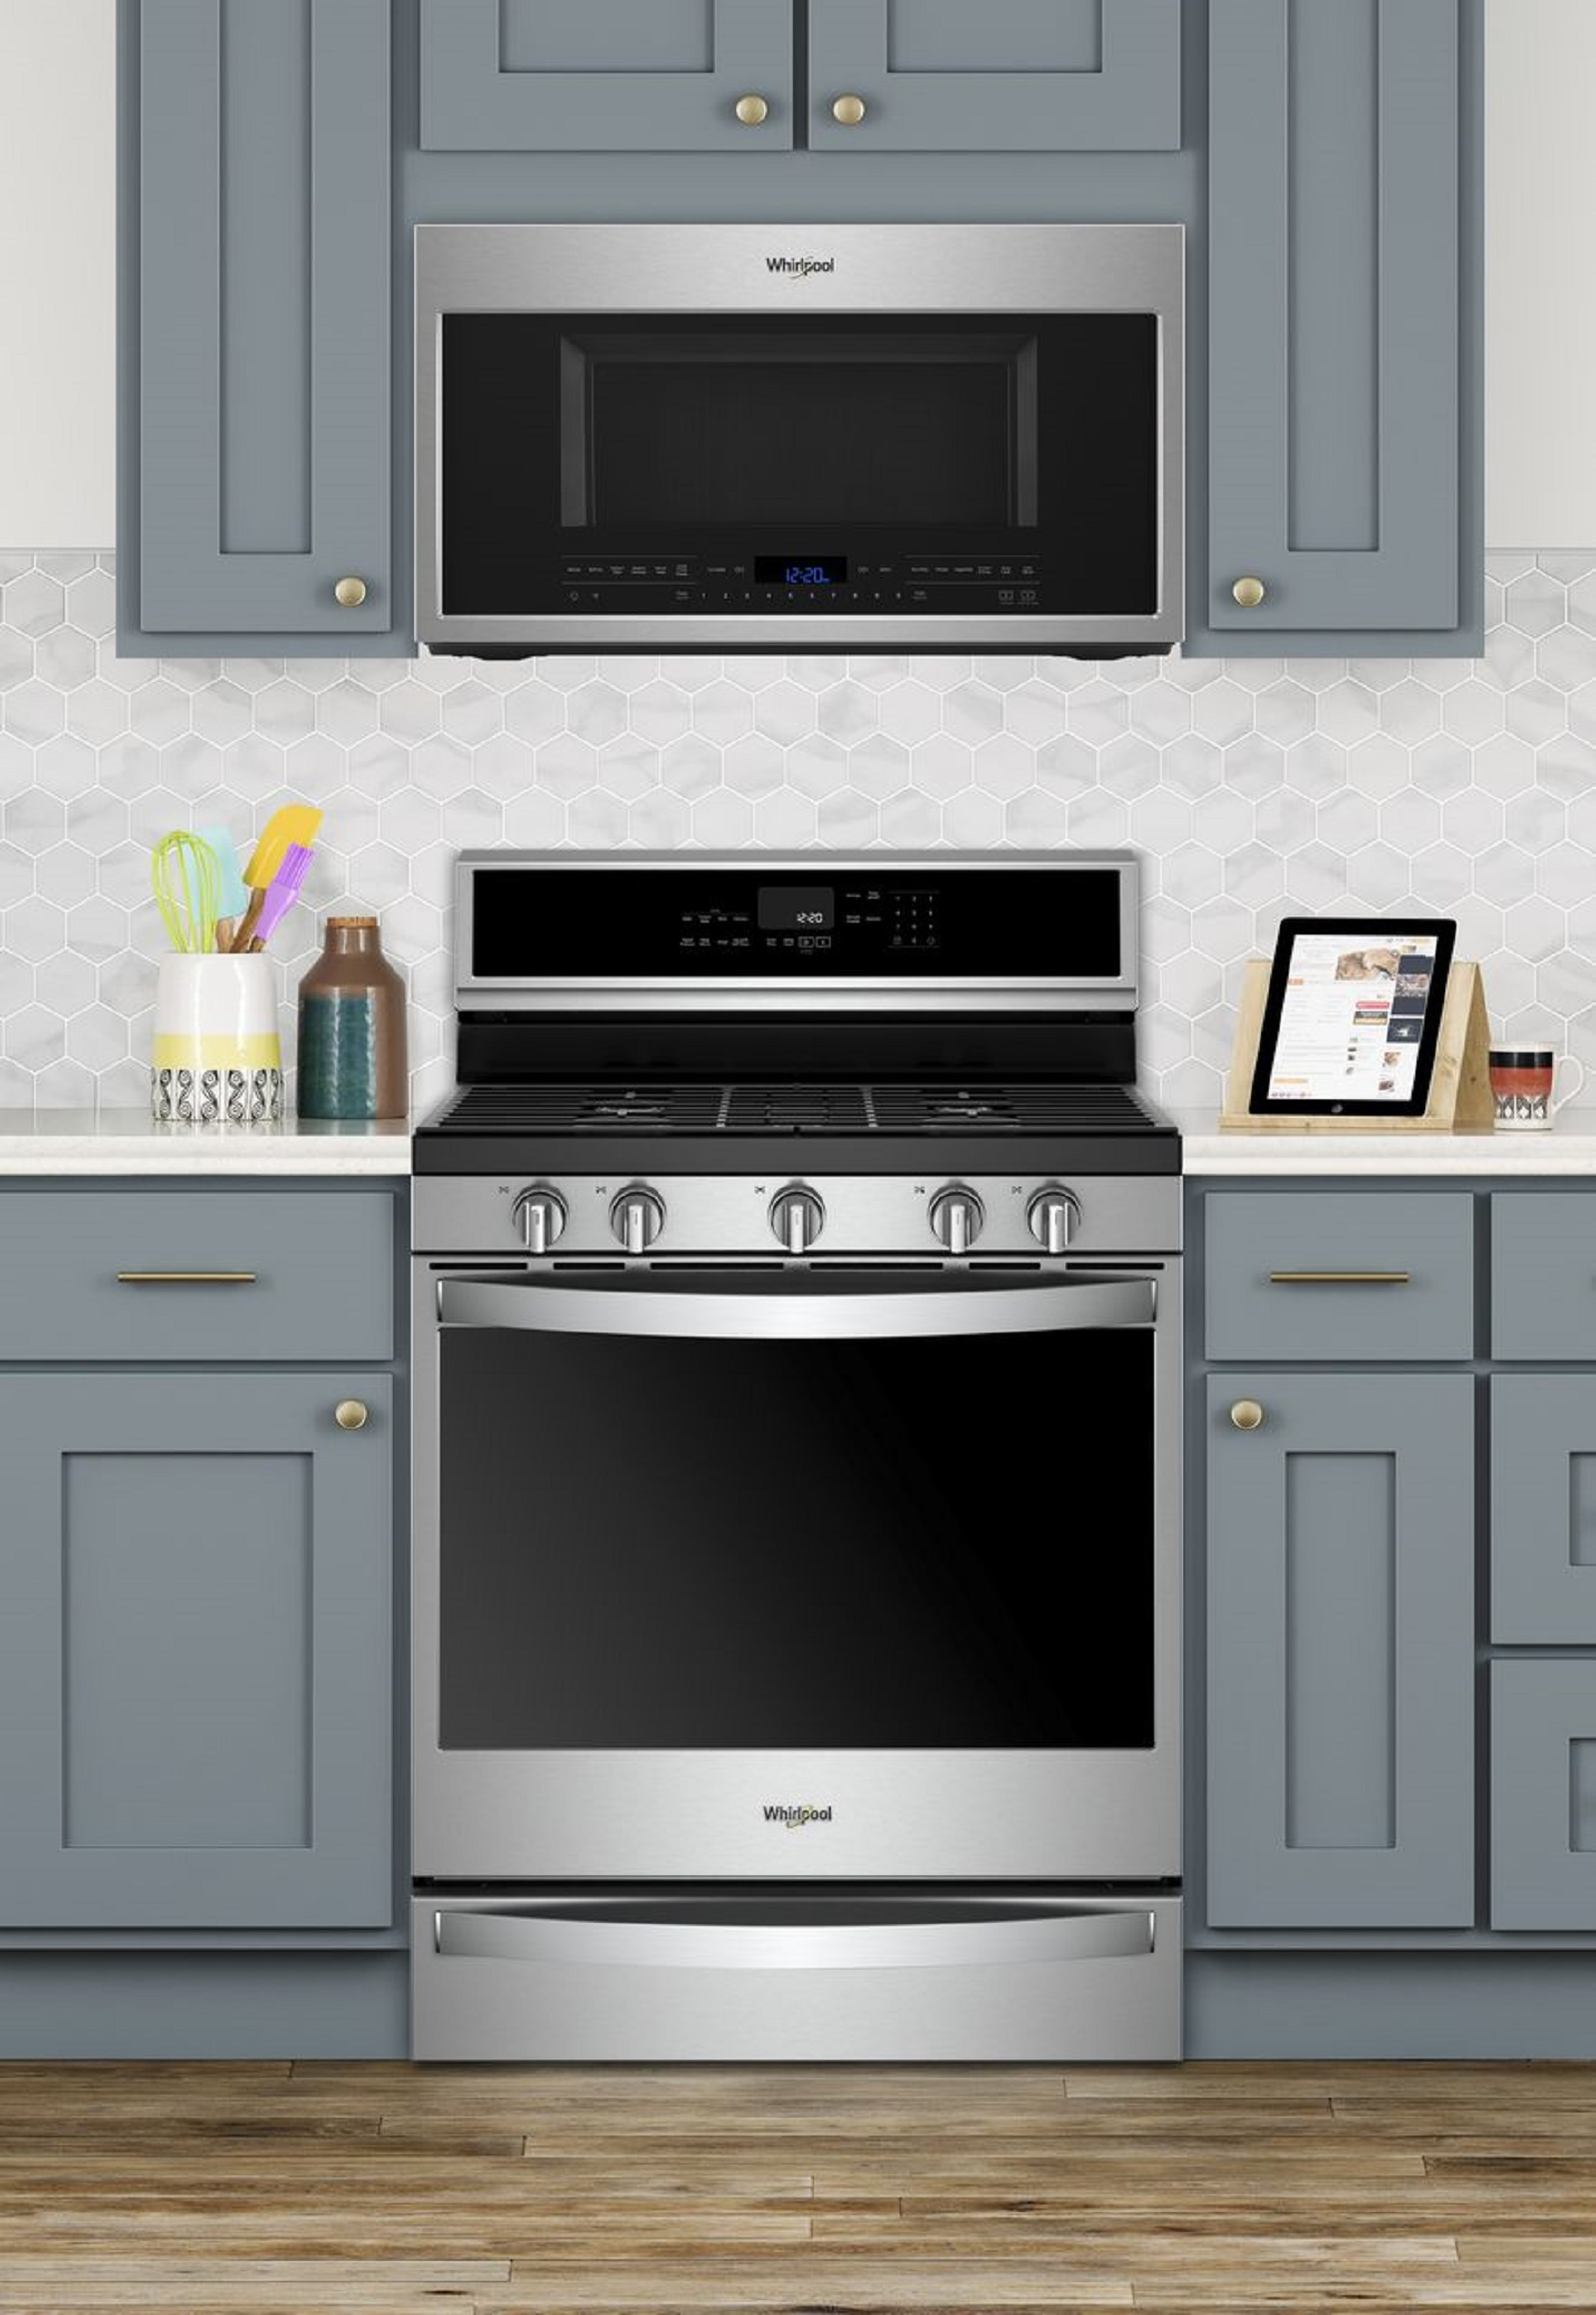 whirlpool wmh75021hz 2 1 cu ft over the range microwave with steam cooking